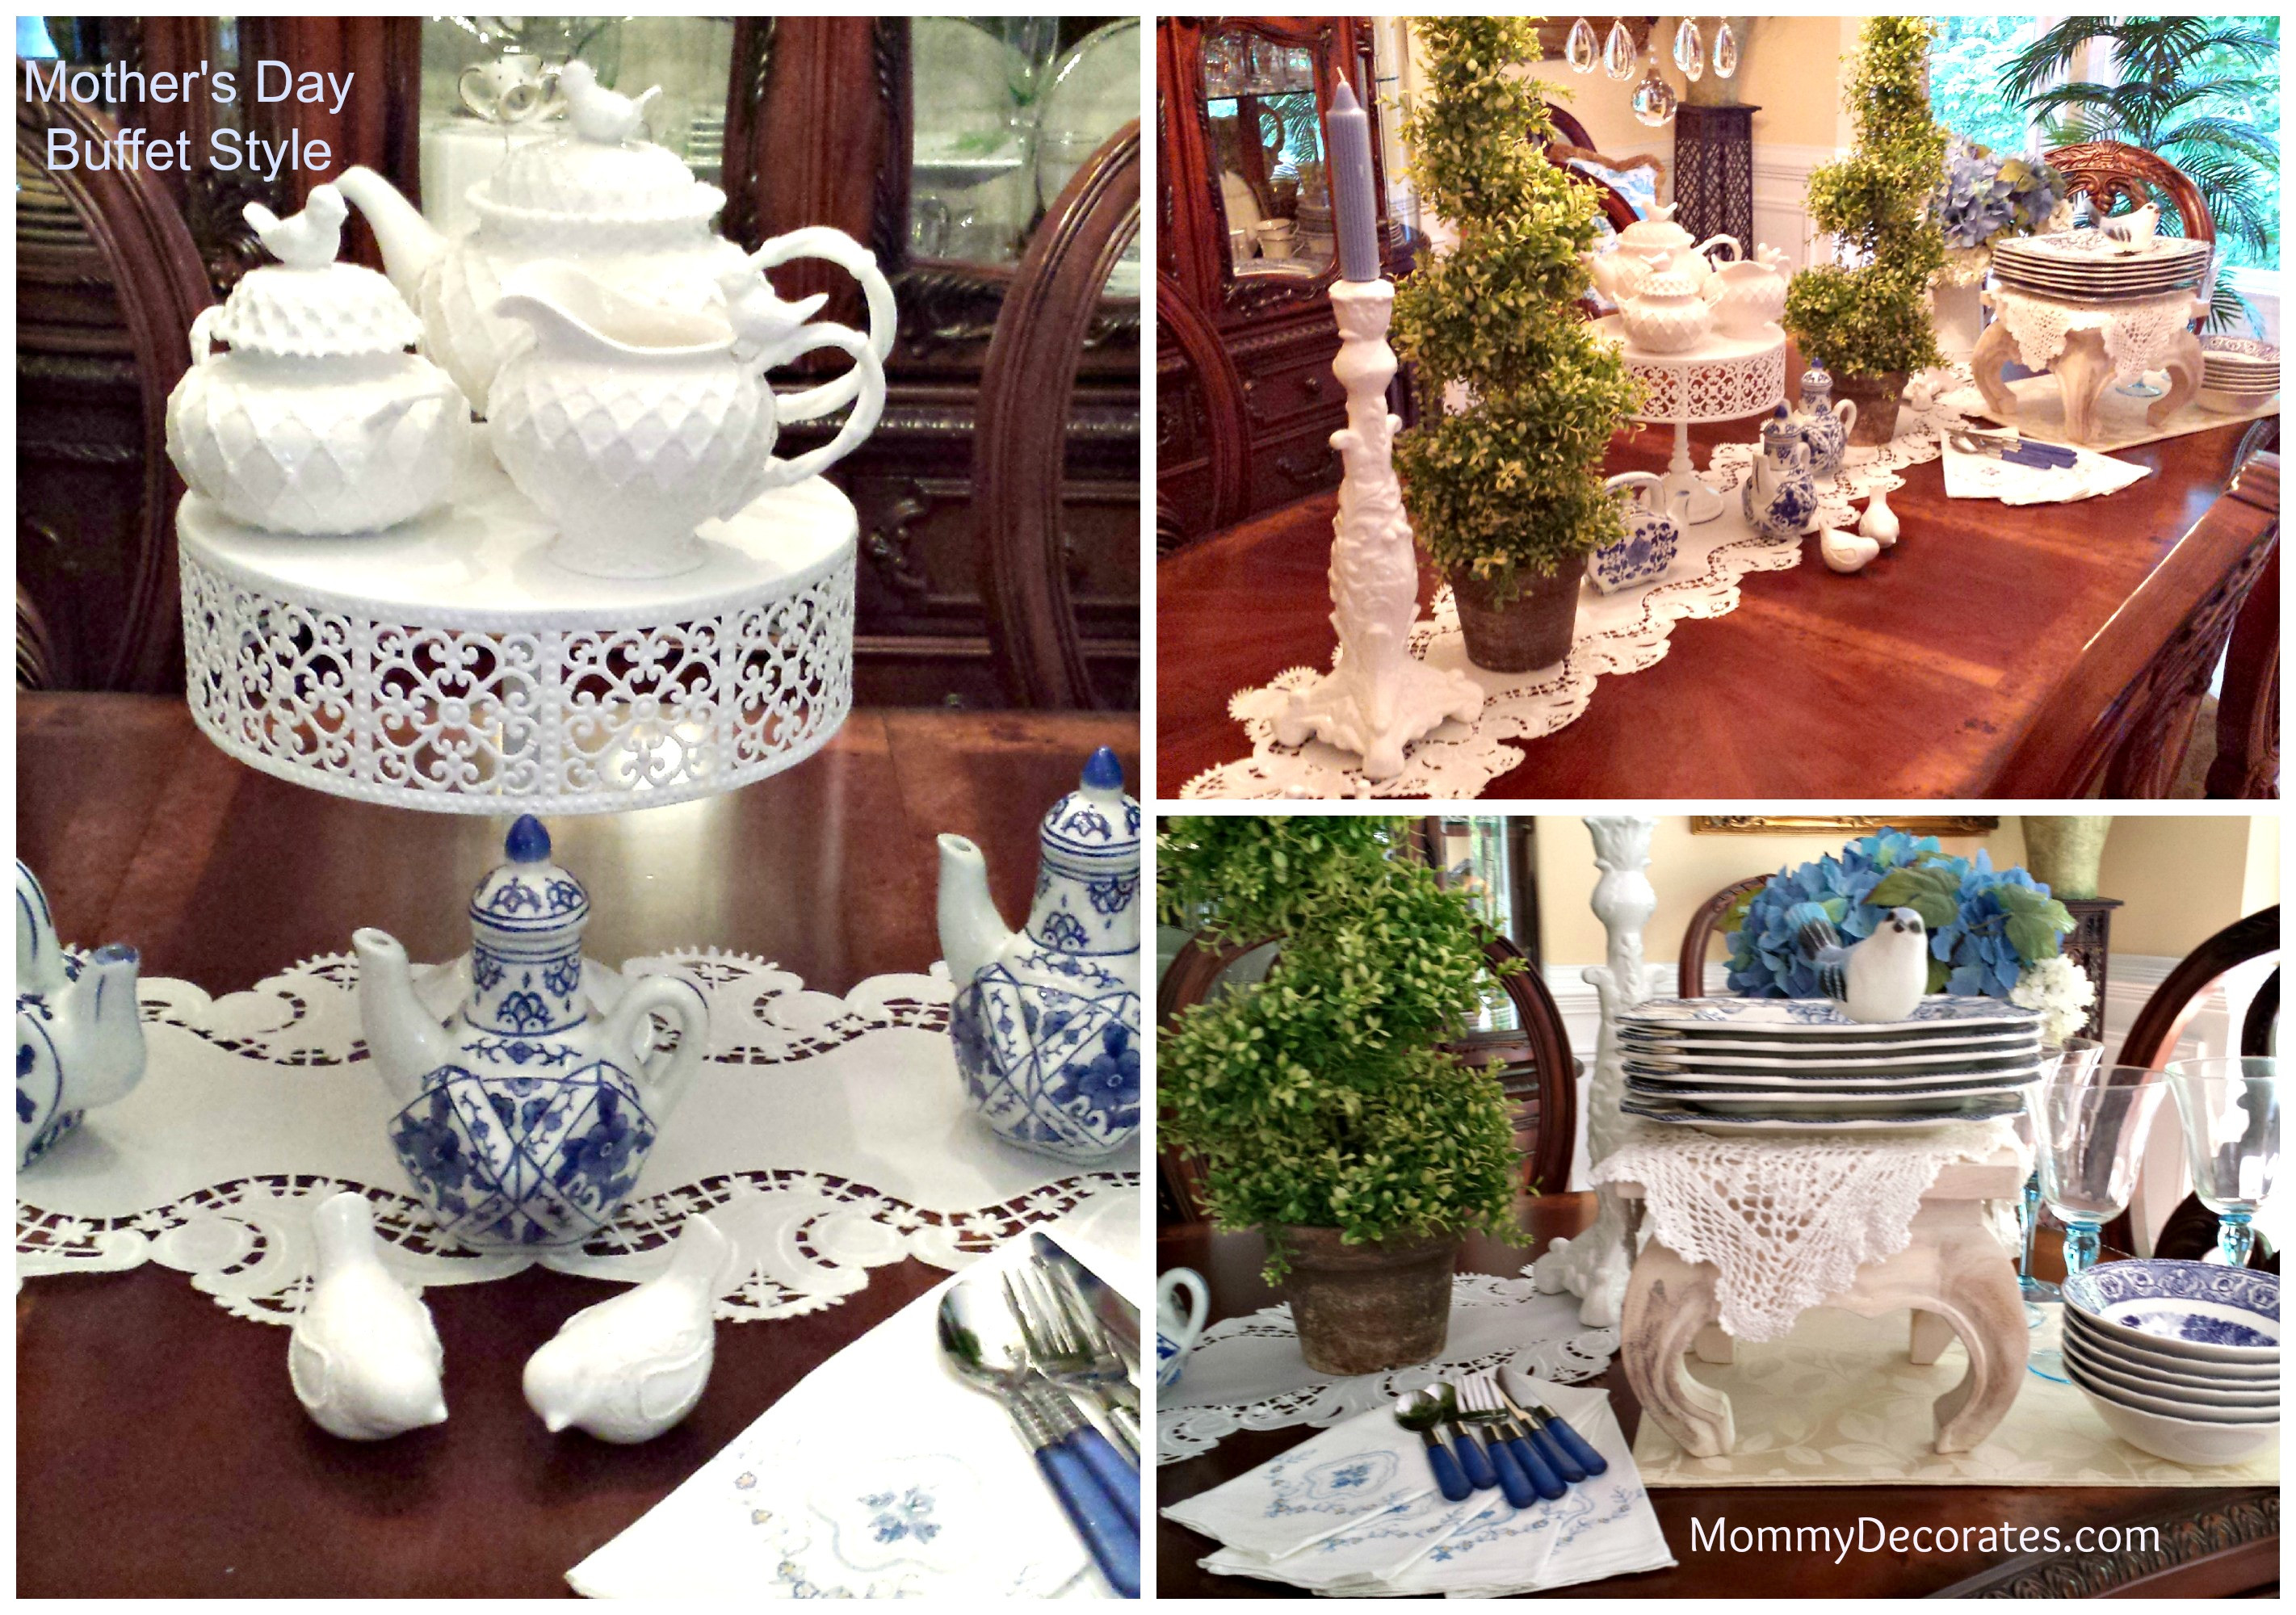 Mother'S Day Breakfast Recipes  Mother 039 s Day Brunch Buffet Style Table Setting Ideas